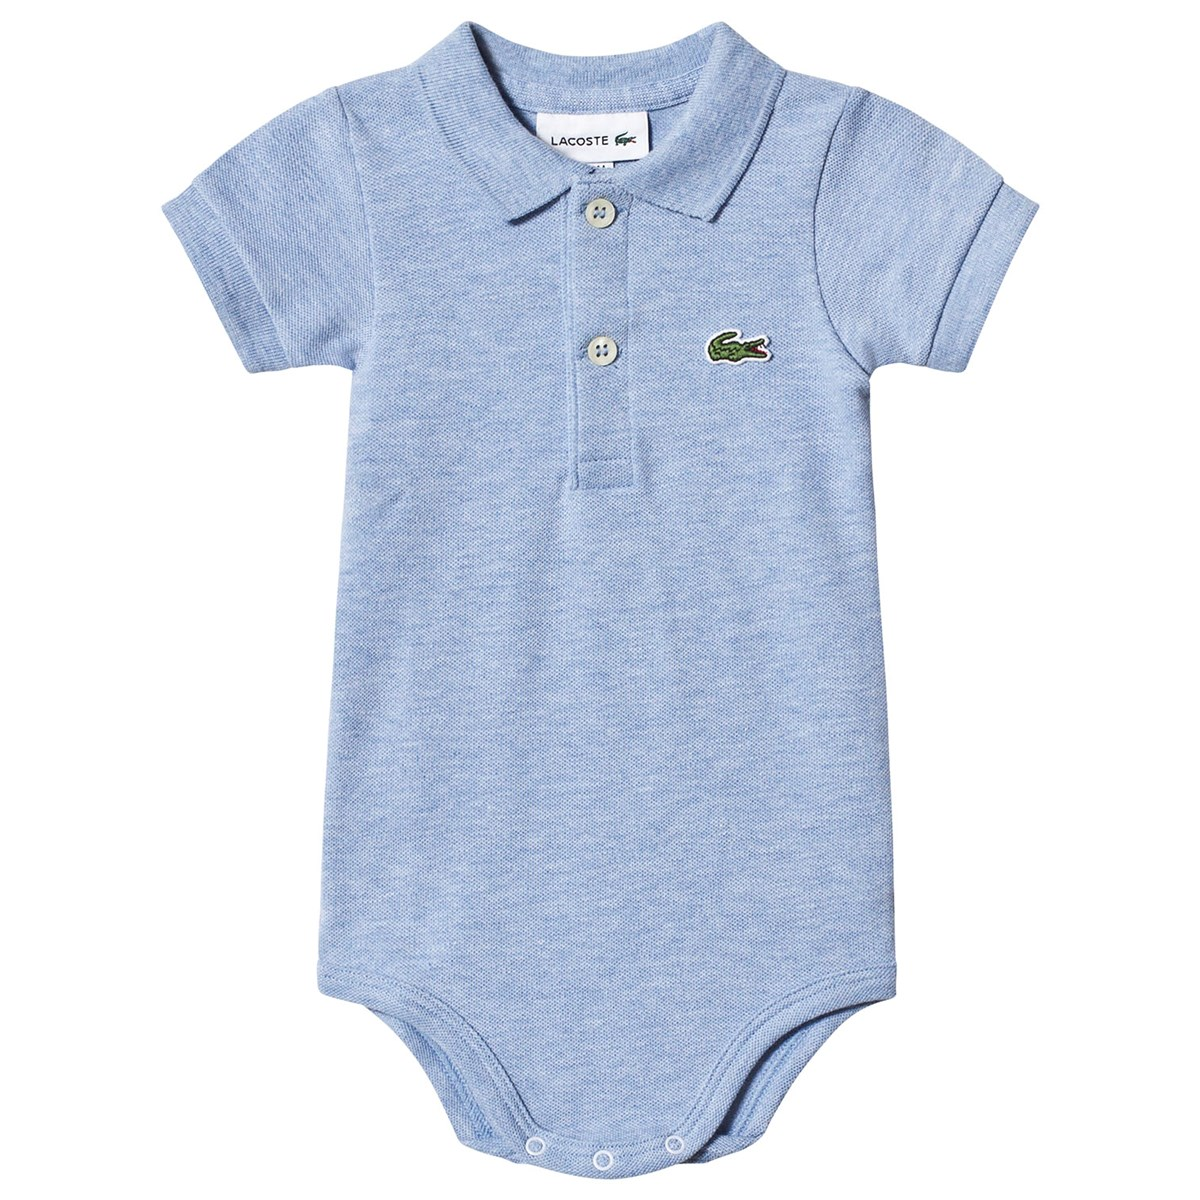 9ff03dcc54 Lacoste - Blue Branded Pique Polo Body in Gift Box - Babyshop.com